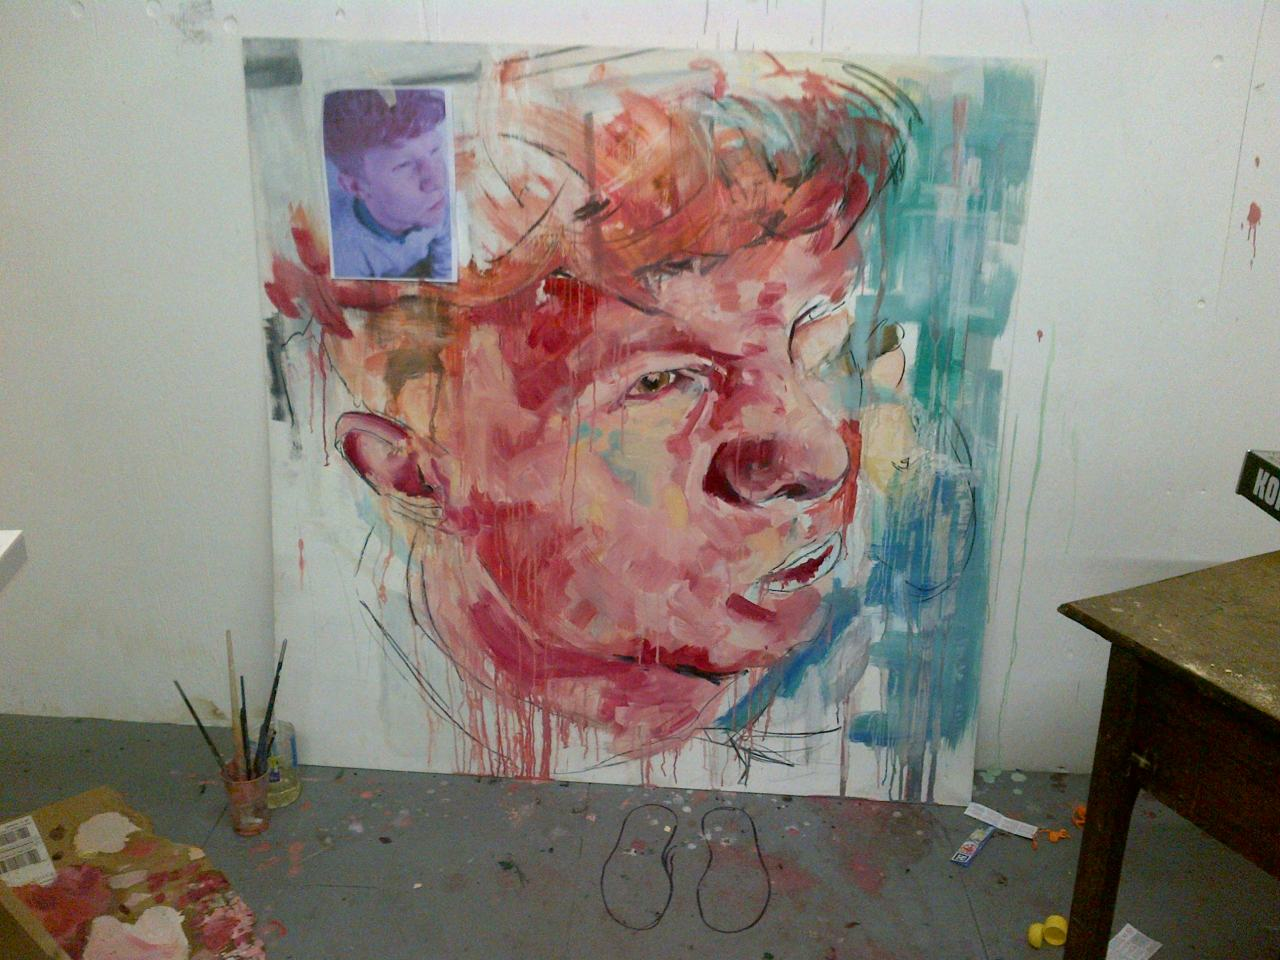 Almost done. ÉTUDE DES ROUGE  (xx:xx) Oil on MDF rowanjames x